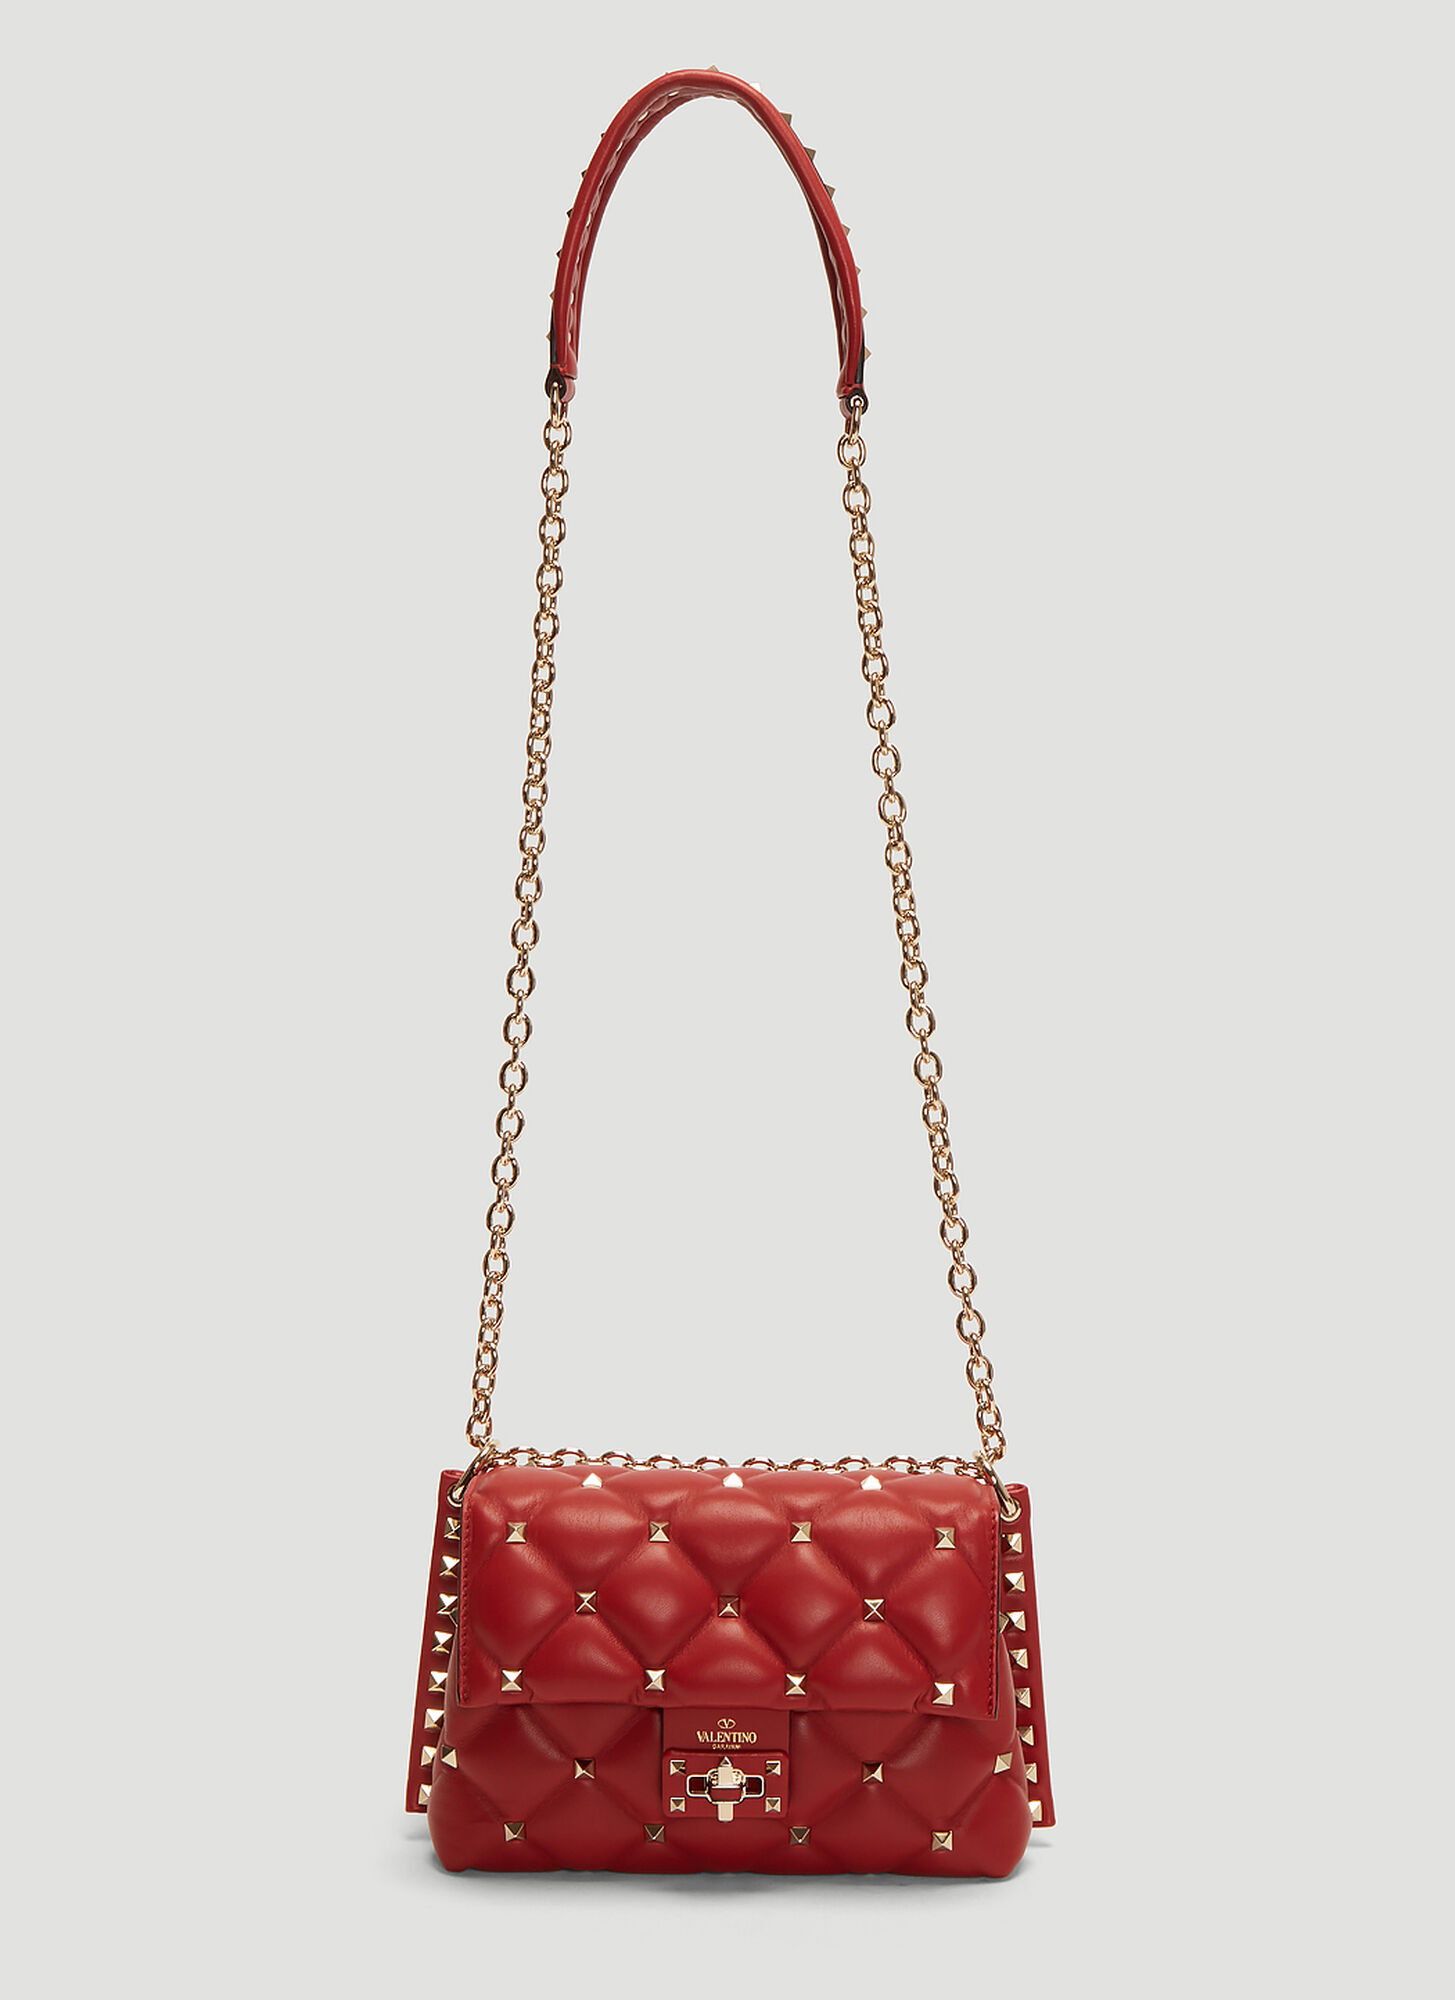 Valentino Small Candystud Shoudler Bag in Red